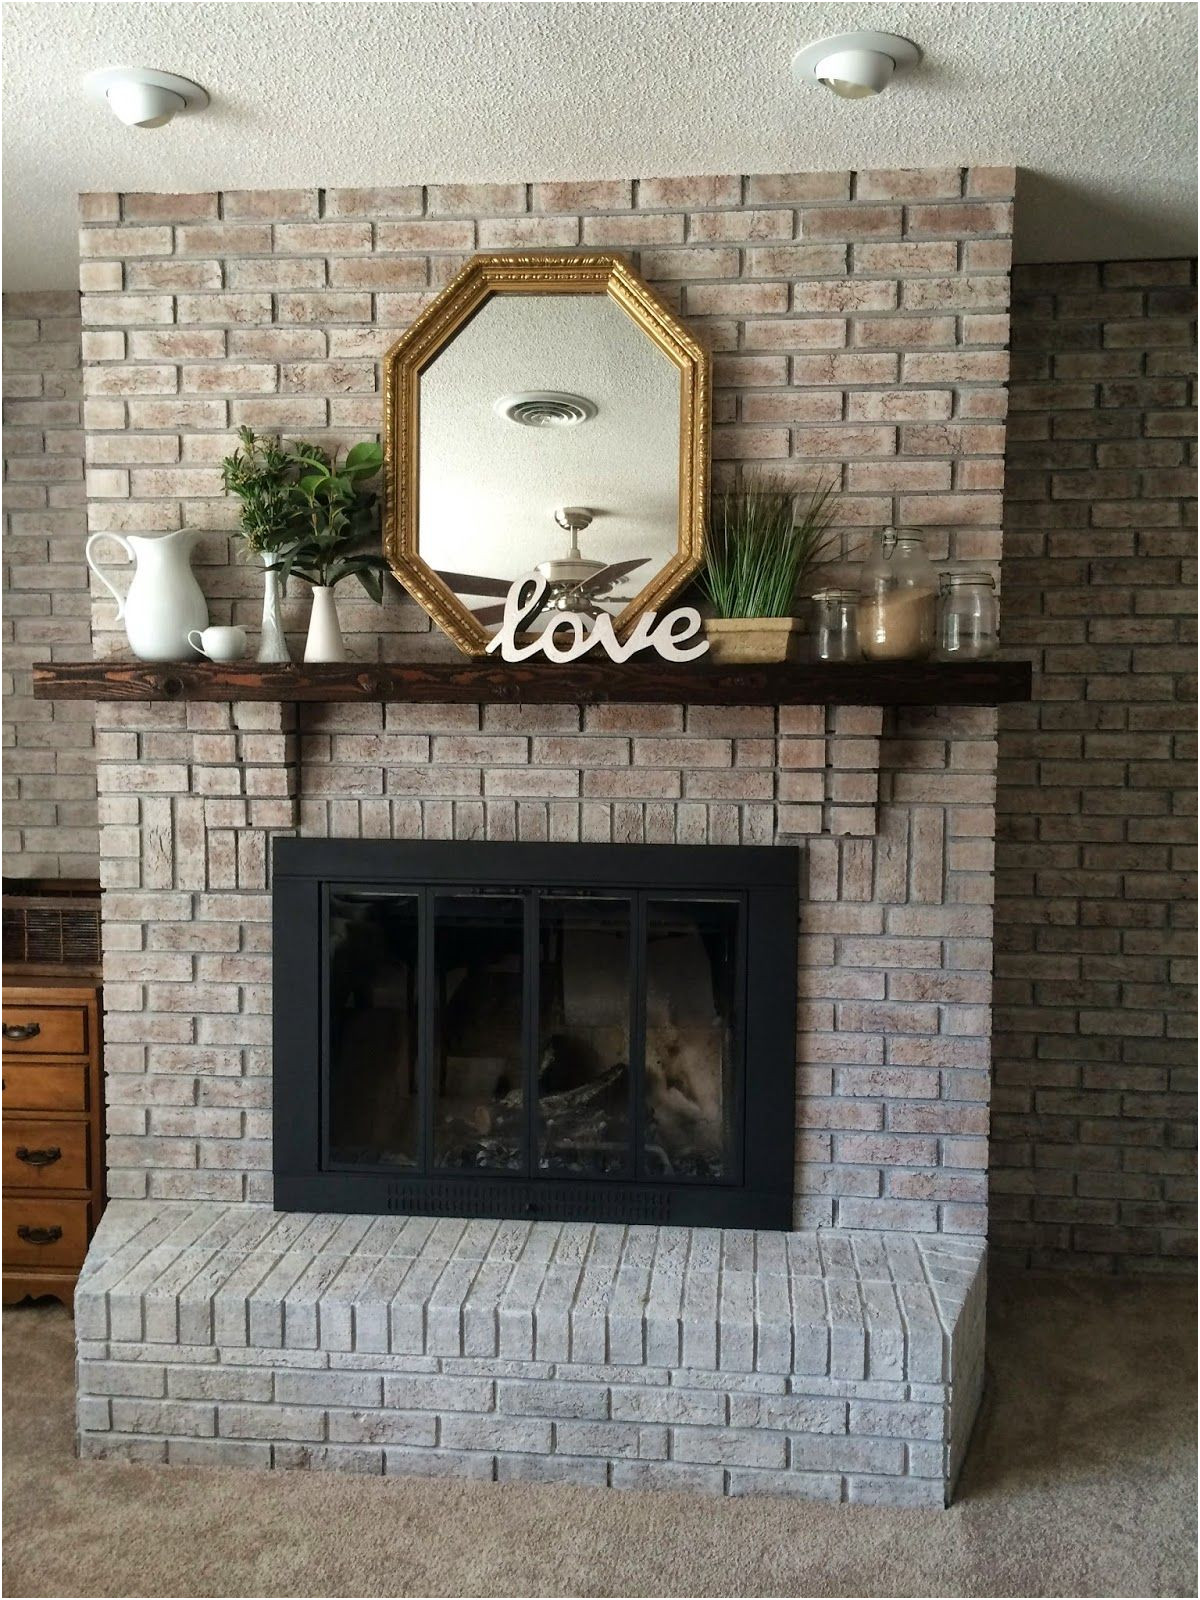 Fireplace Brick Paint Ideas Beautiful White Washing Brick with Gray Beige Walking with Dancers